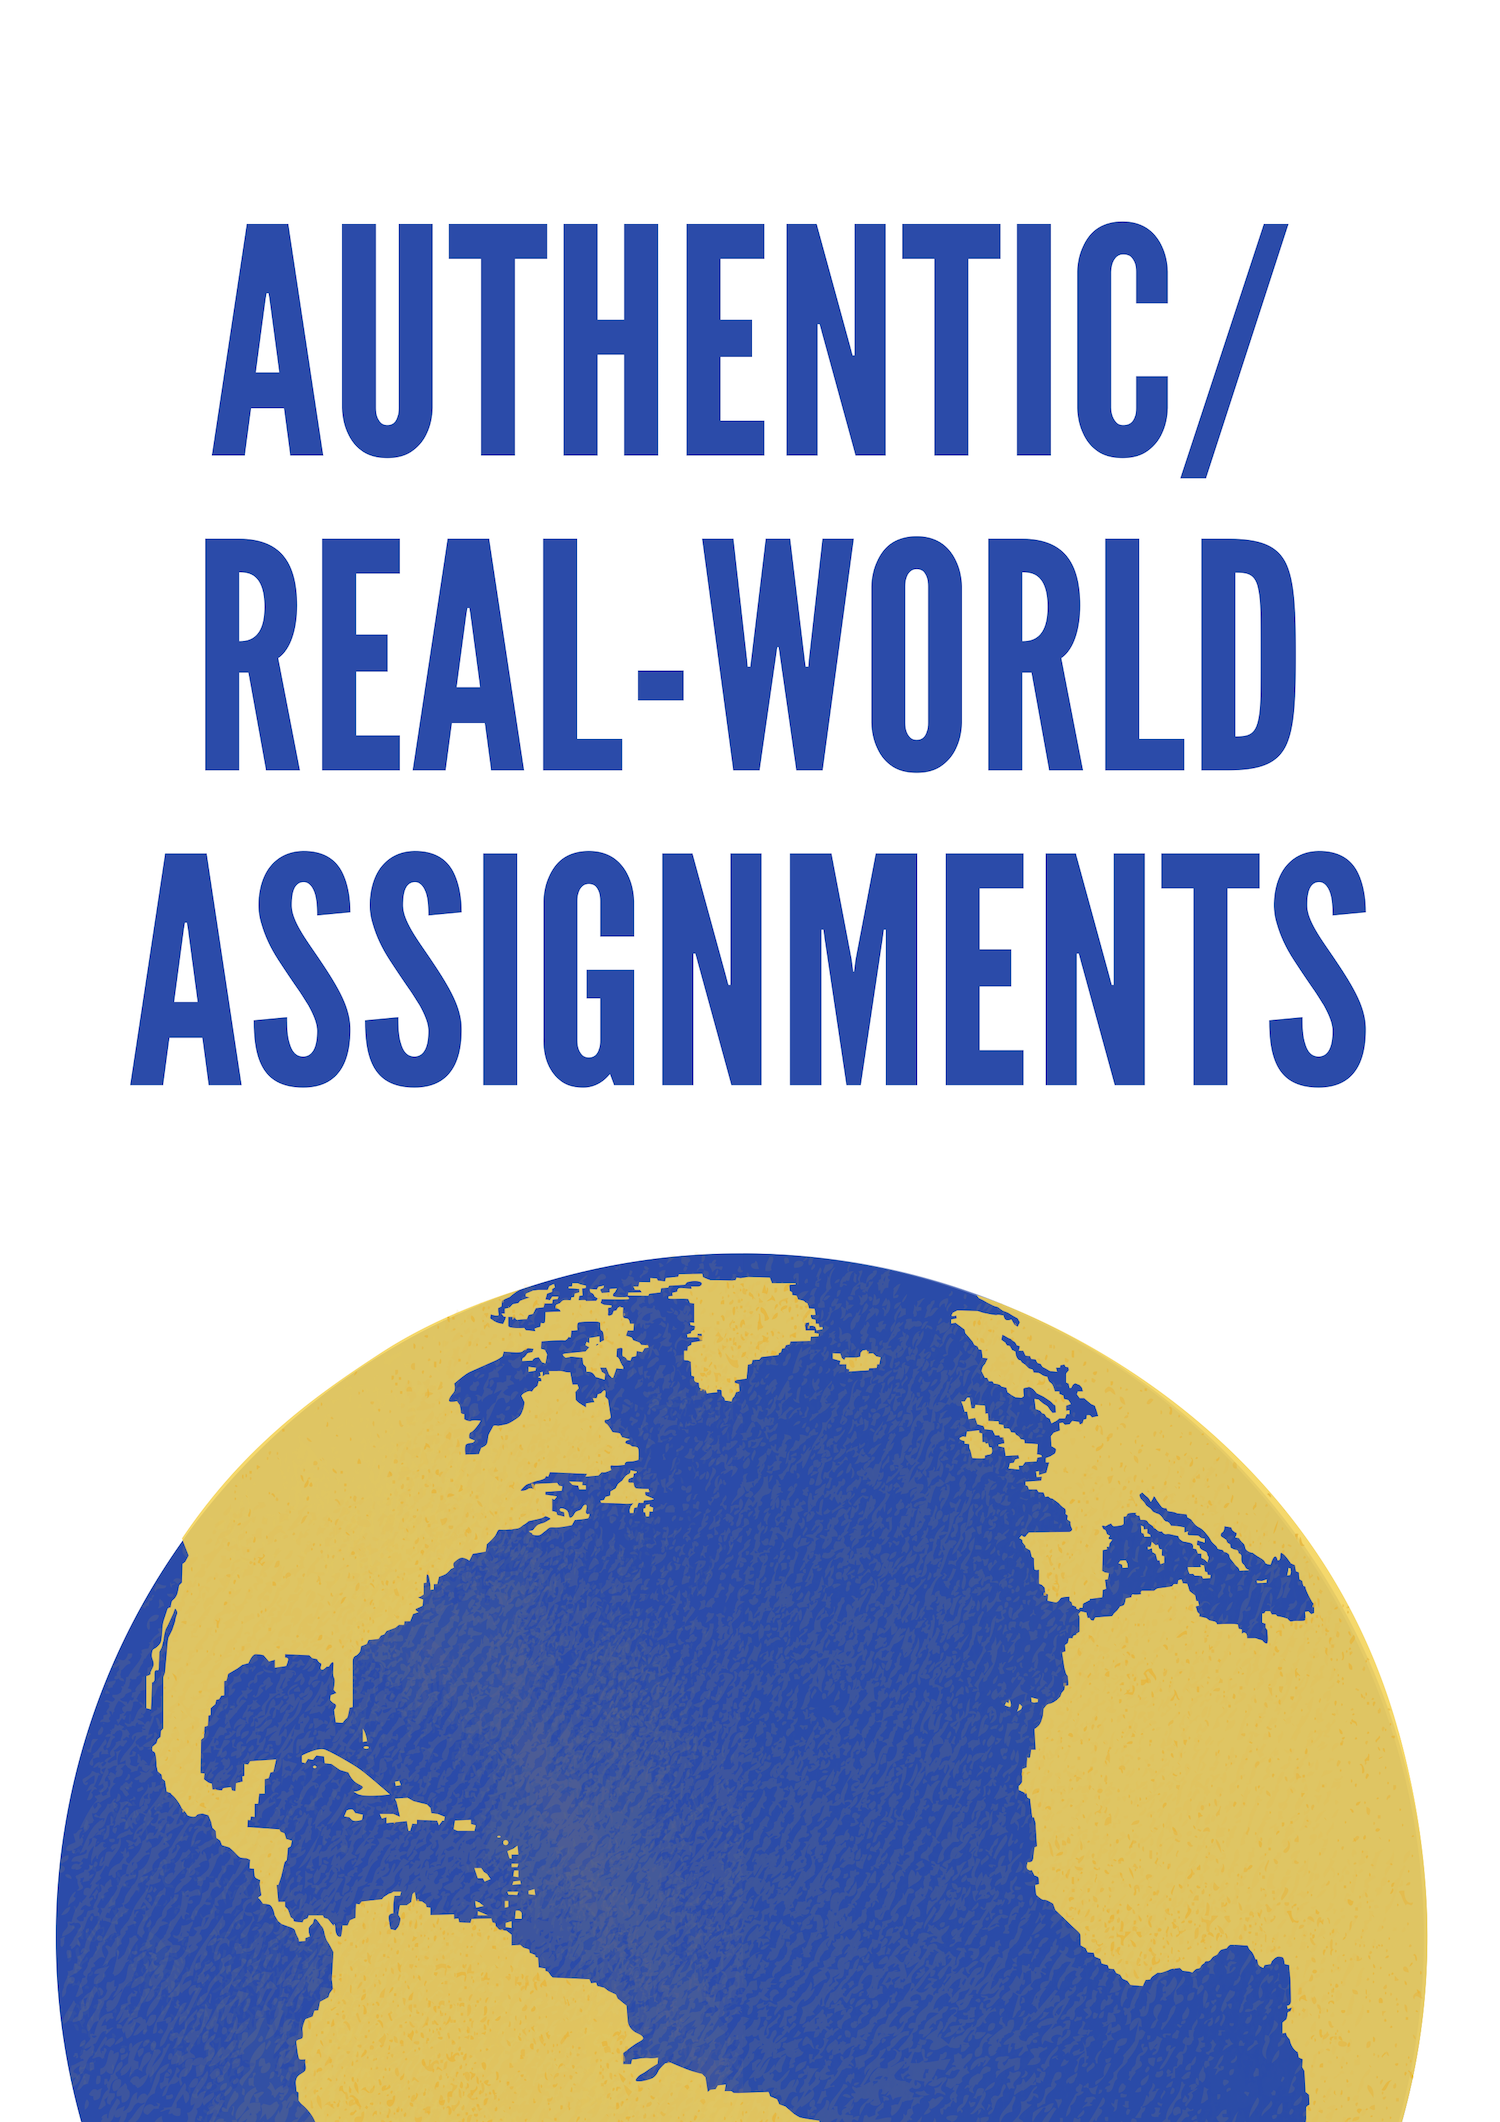 Authentic Assignment Posters